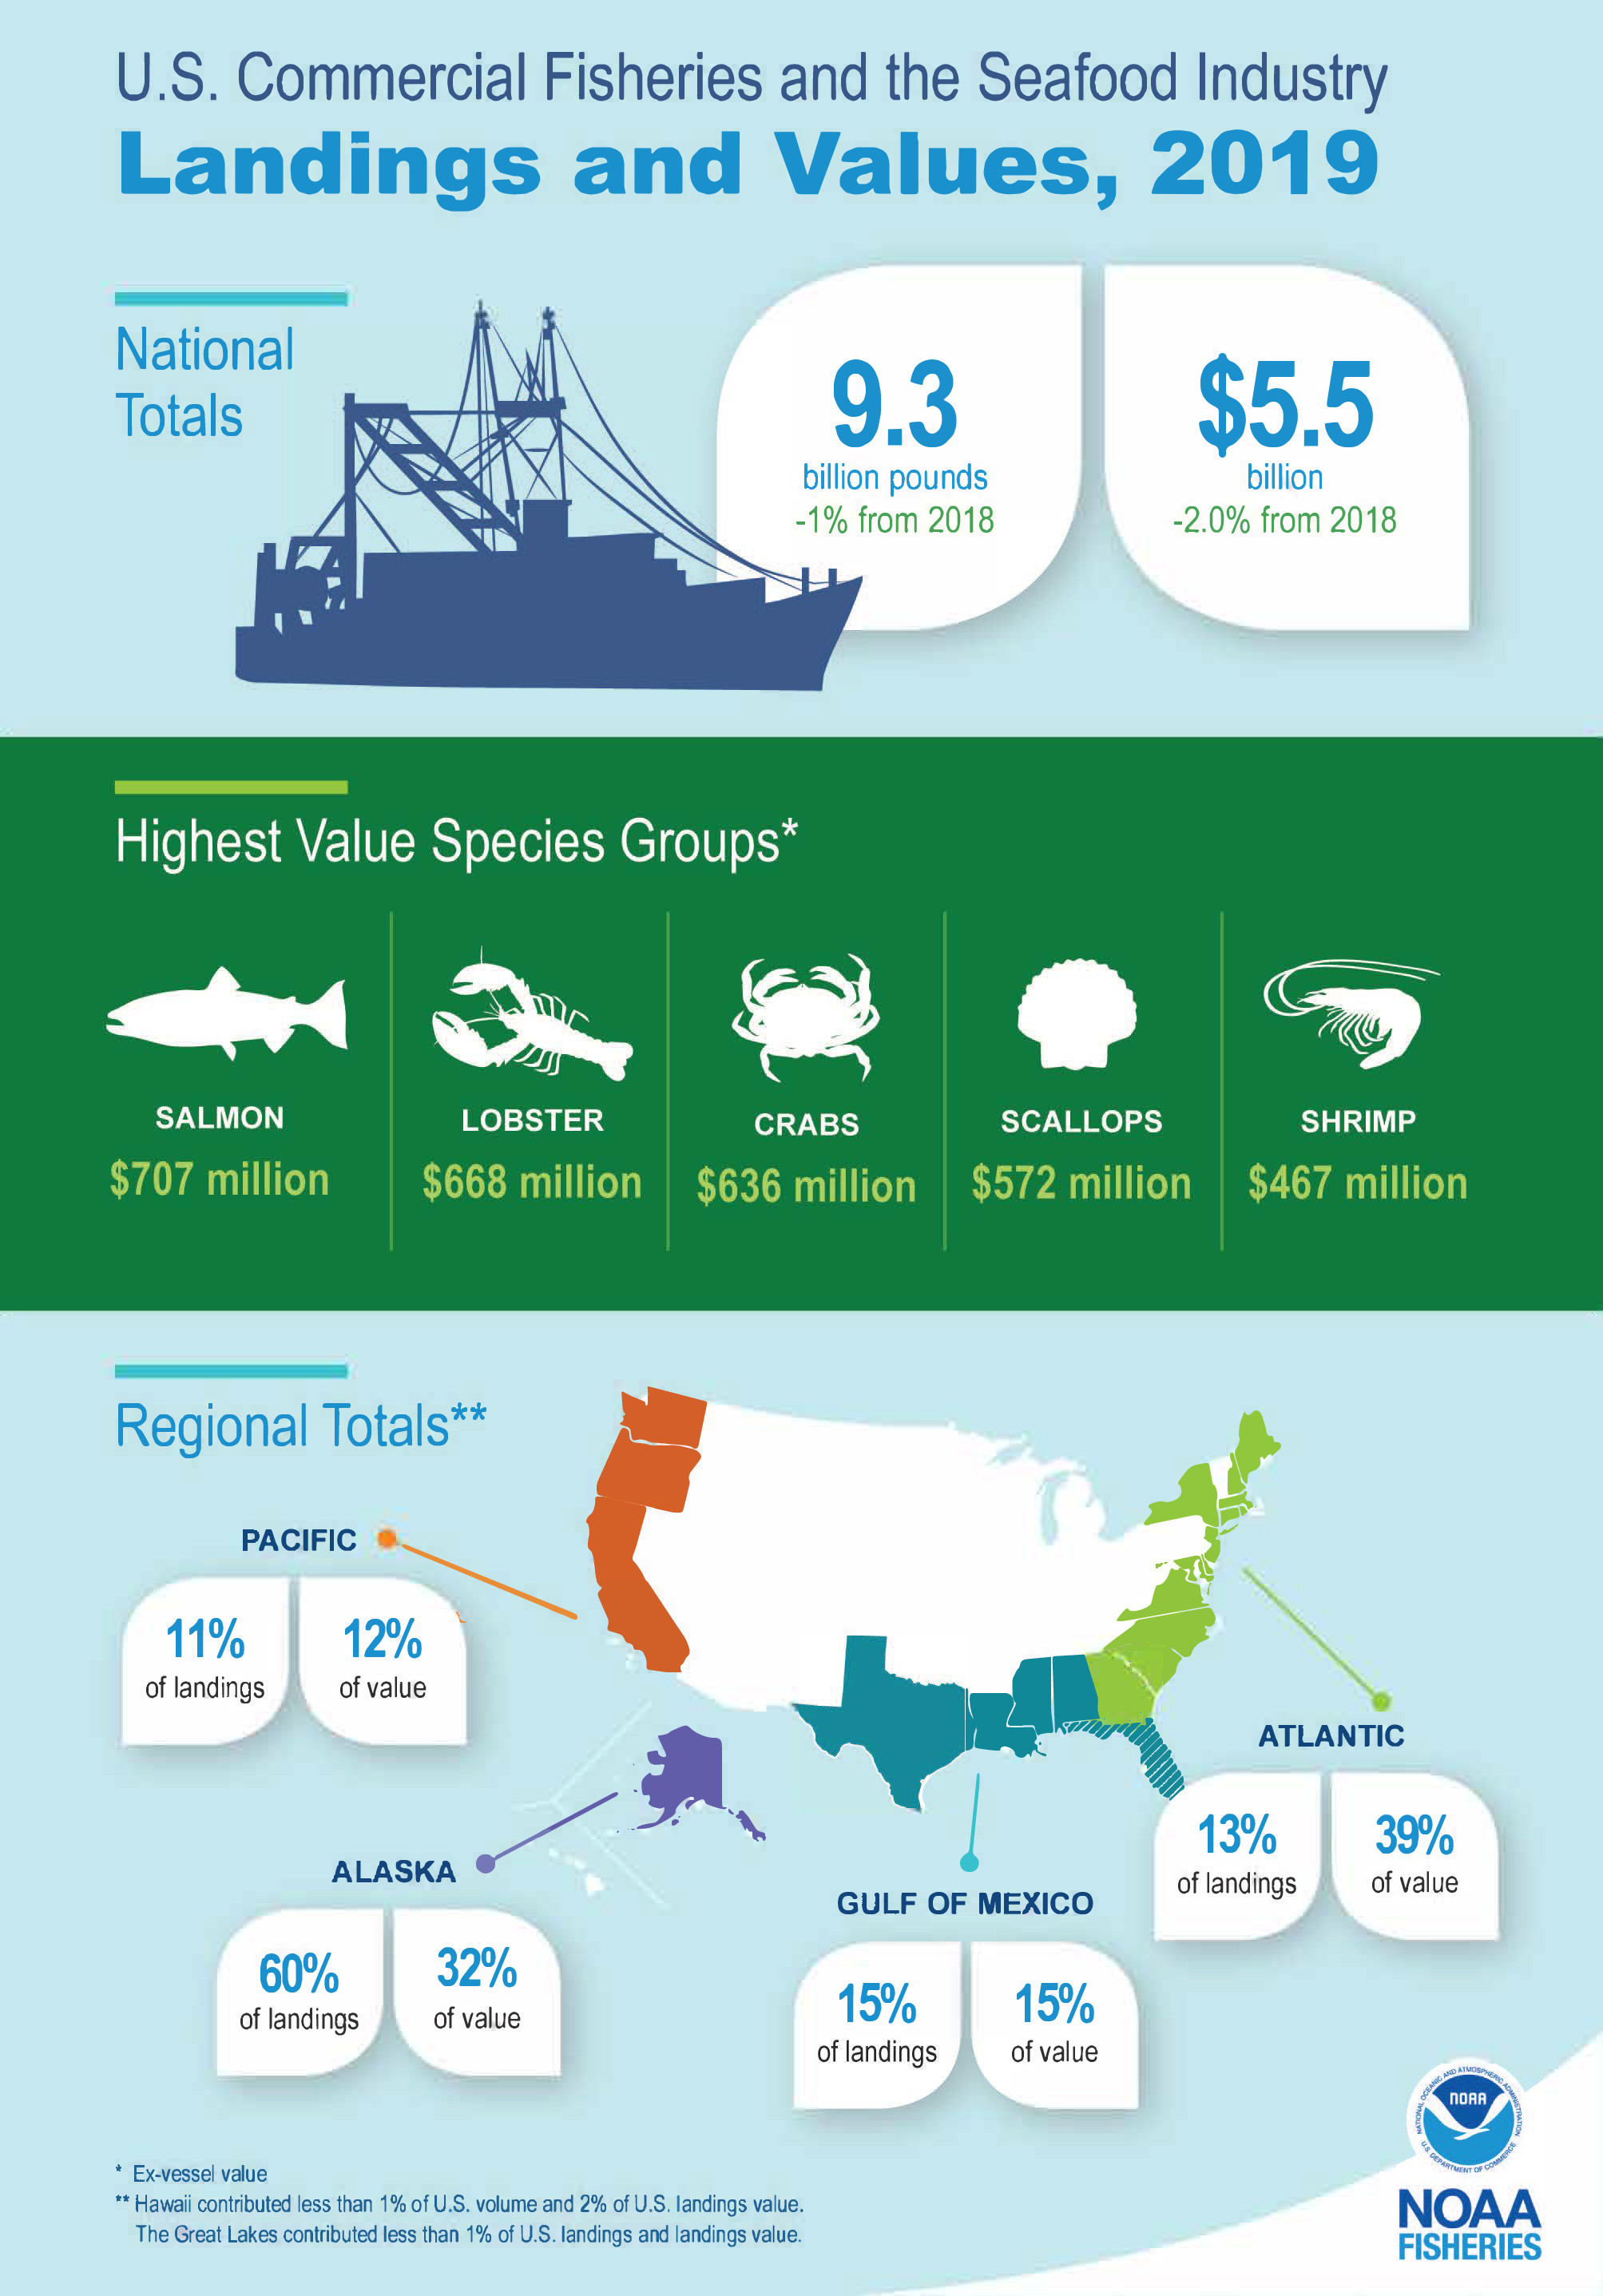 Graphic illustrating 2019 Landings and Values for U.S. Commercial Fisheries and Seafood